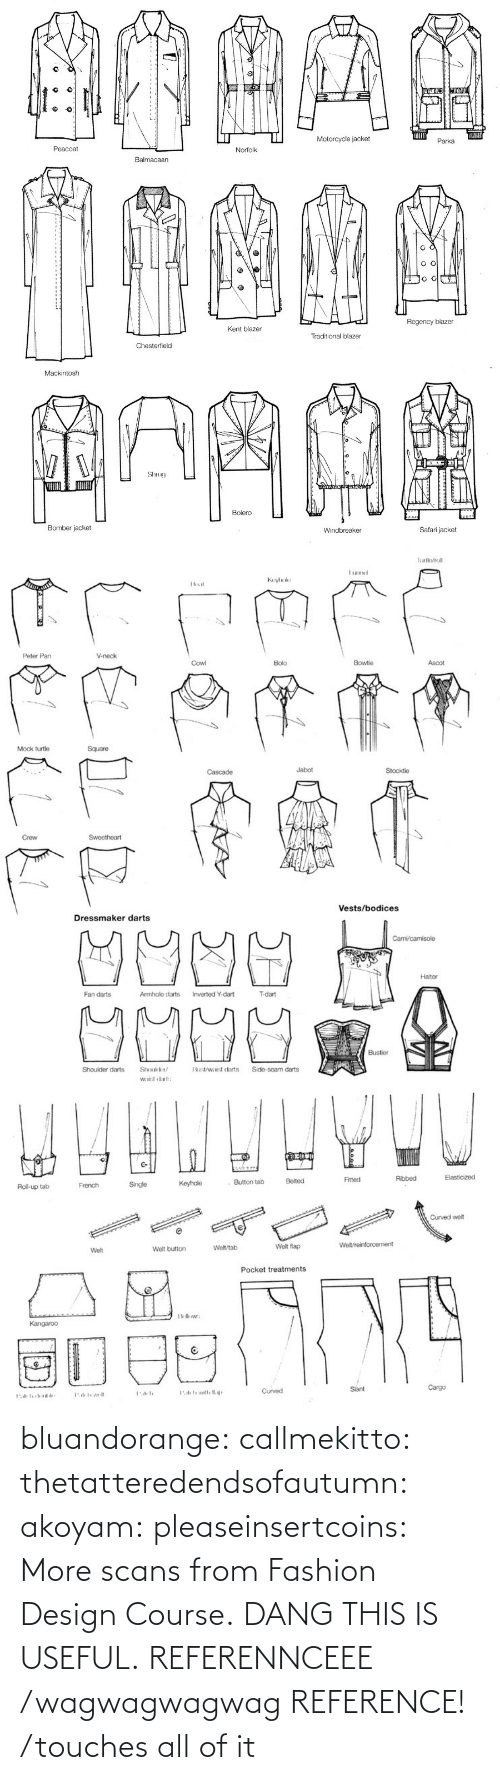 useful: bluandorange:  callmekitto:  thetatteredendsofautumn:  akoyam:  pleaseinsertcoins:  More scans from Fashion Design Course.  DANG THIS IS USEFUL.  REFERENNCEEE  /wagwagwagwag REFERENCE!  /touches all of it